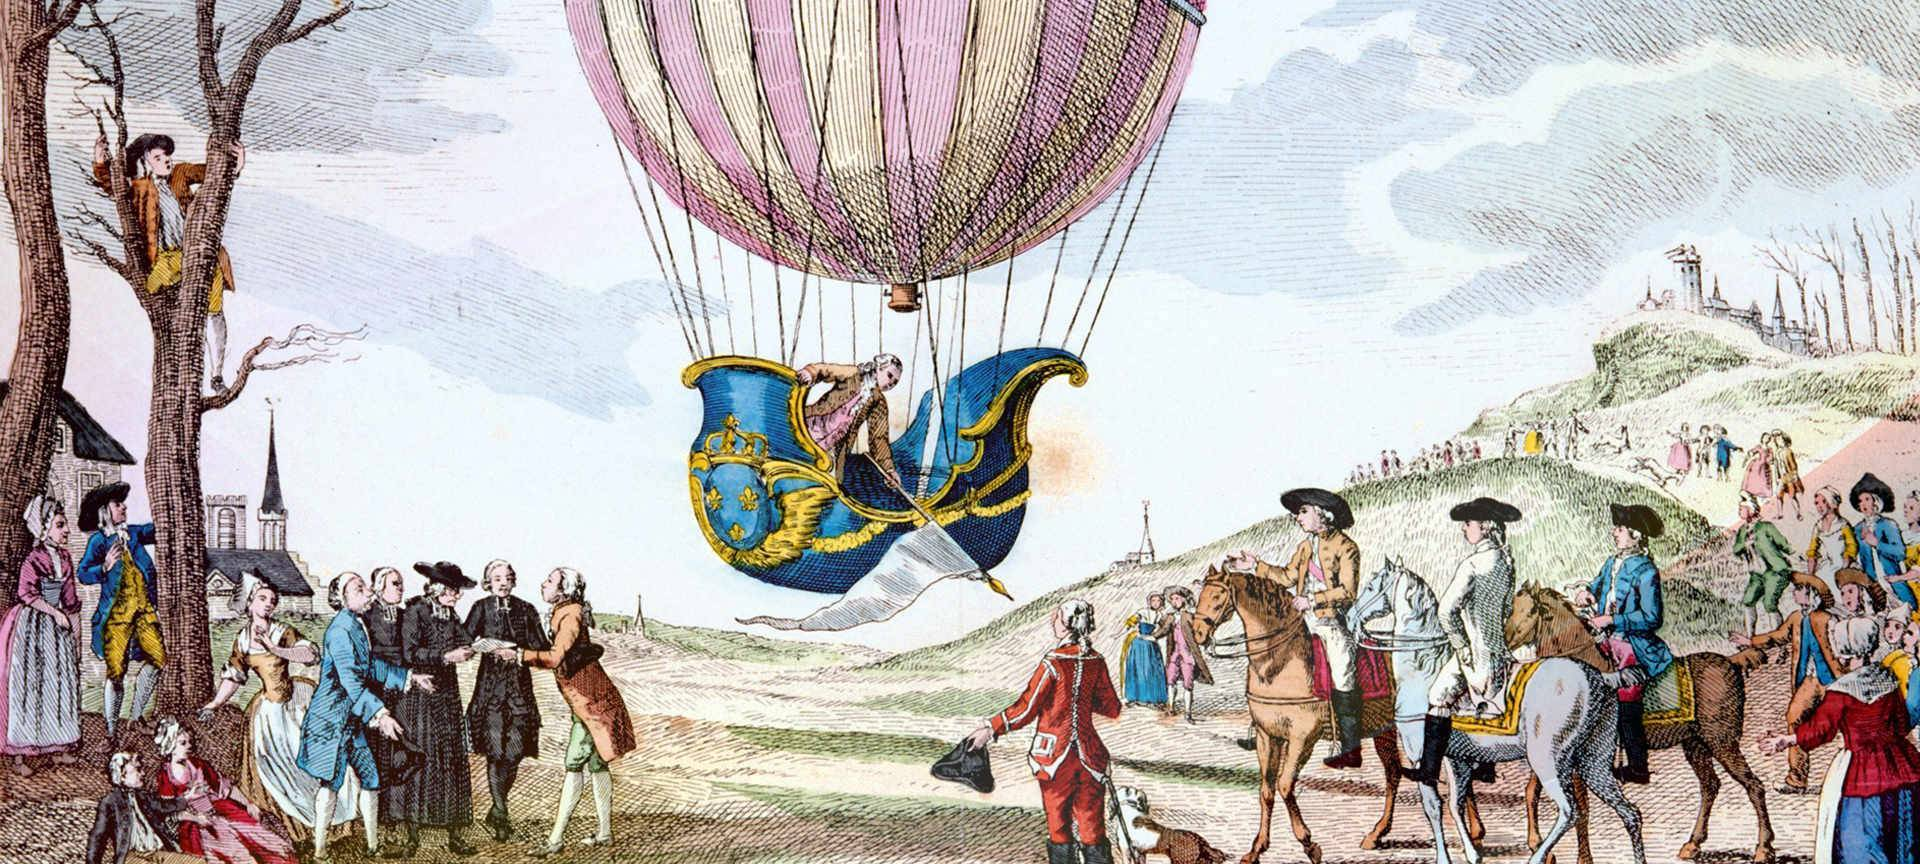 hot air ballloons